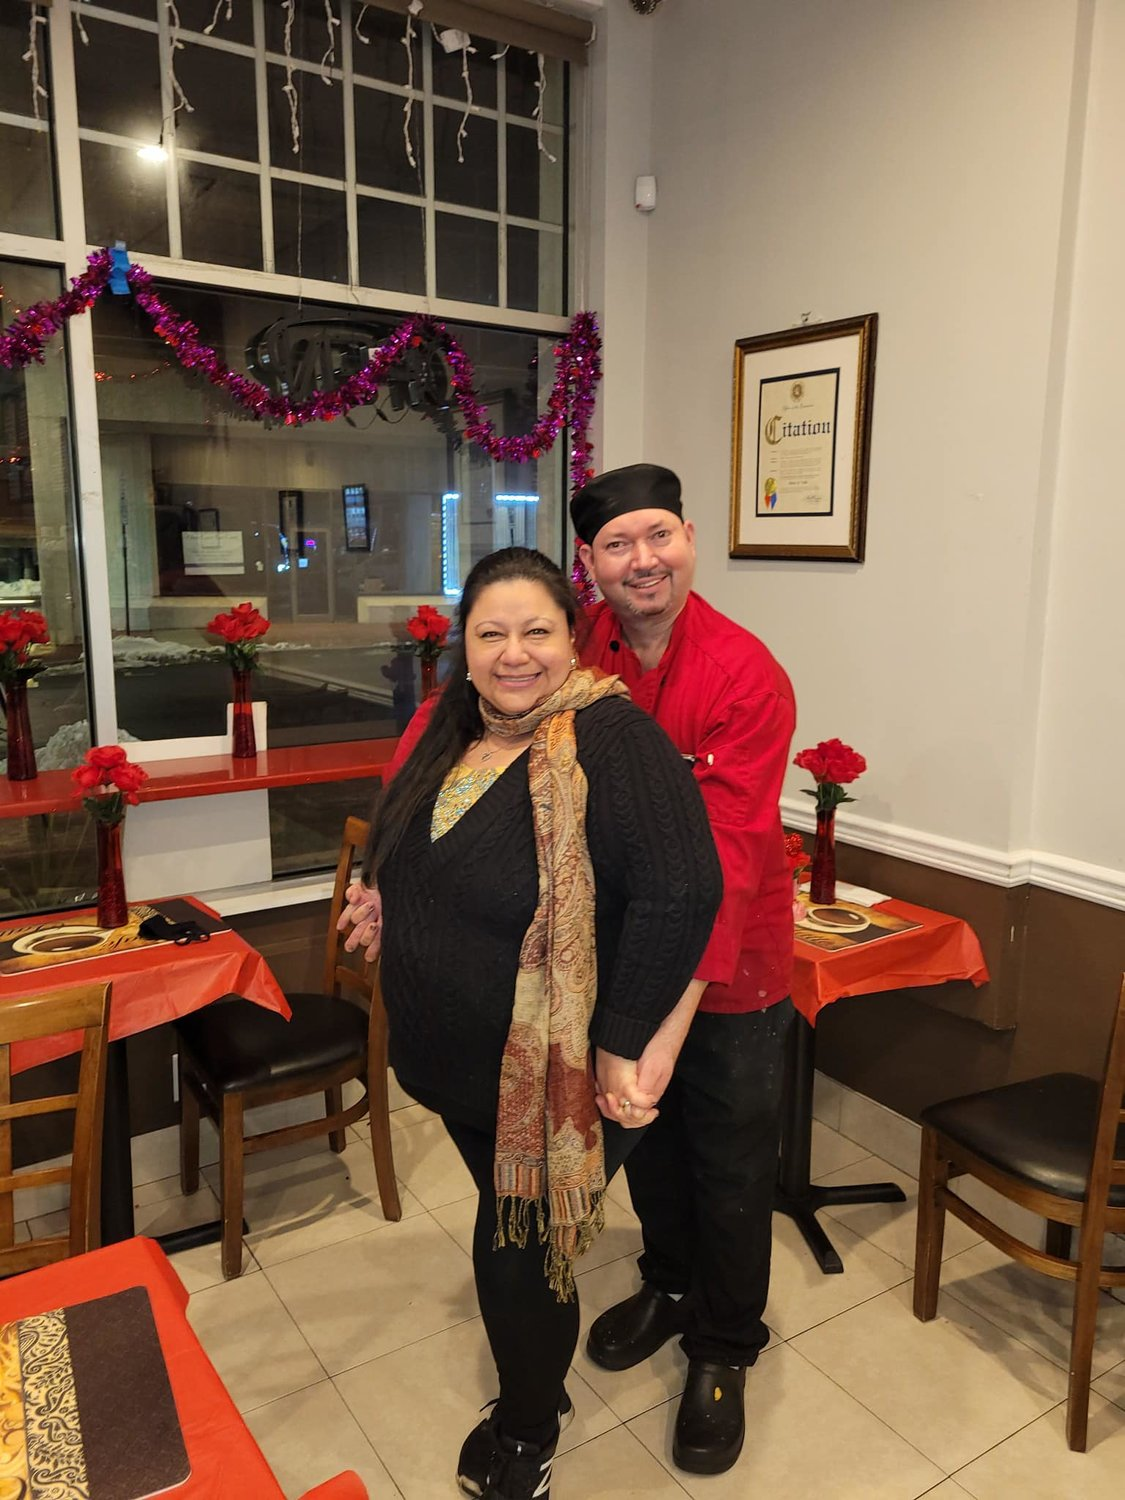 Elsa and Moris Valle decorated Chef Moris Cafe for diners on Valentine's Day. They are looking forward to seeing more customers with the new guidelines.